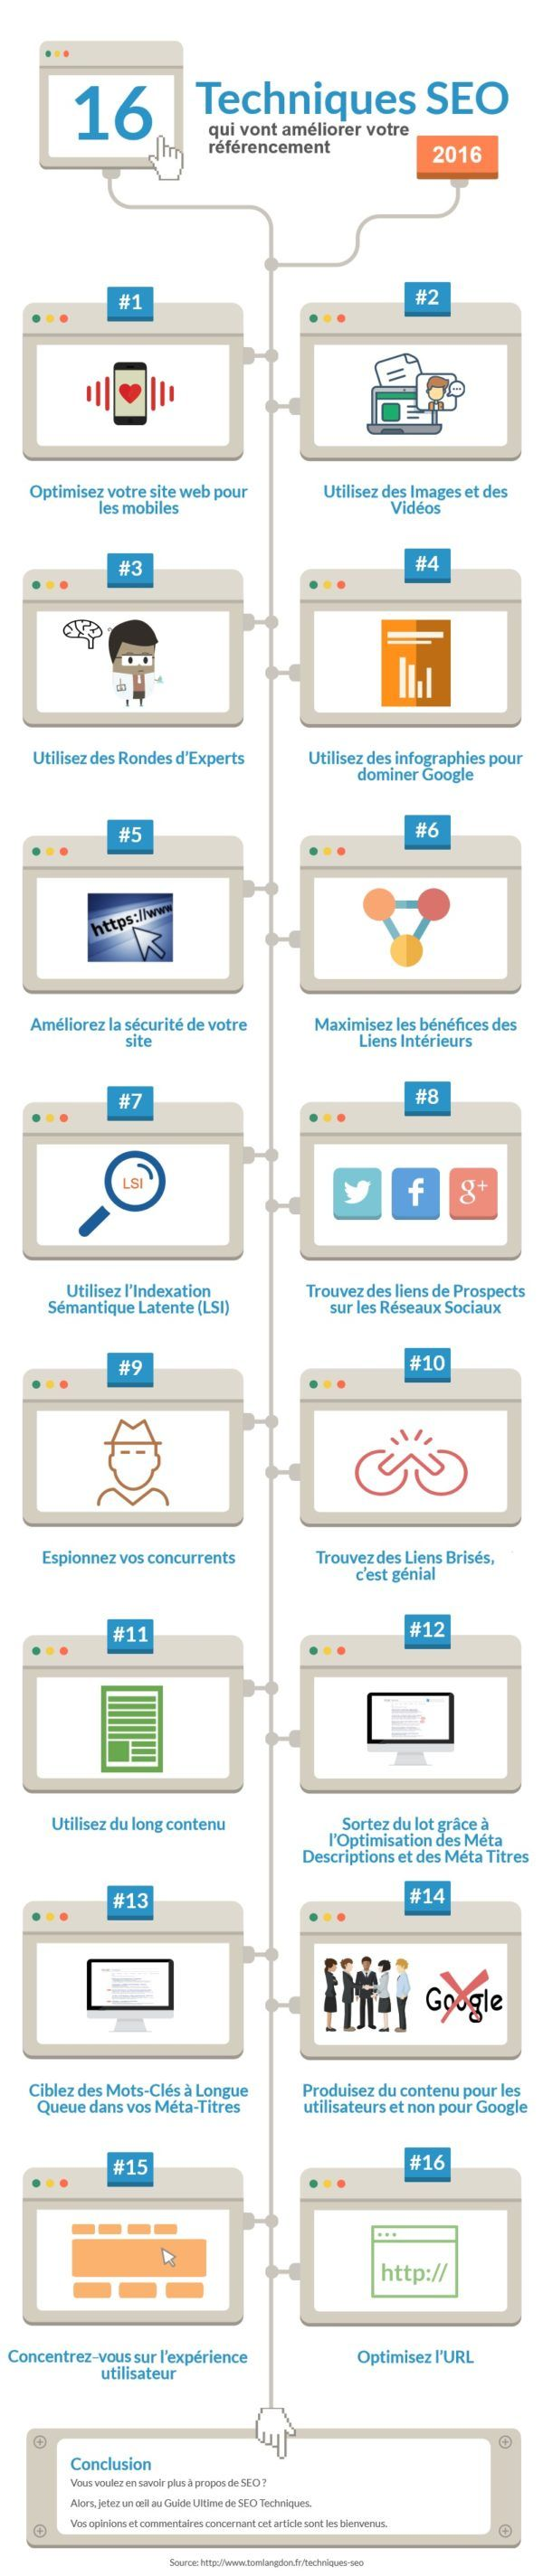 Webmarketing & co'm      Search Marketing     Social Media     Inbound Marketing     E-commerce     Mobile Marketing     Entreprendre     Emploi  [Infographie] 16 techniques SEO que tout site devrait utiliser